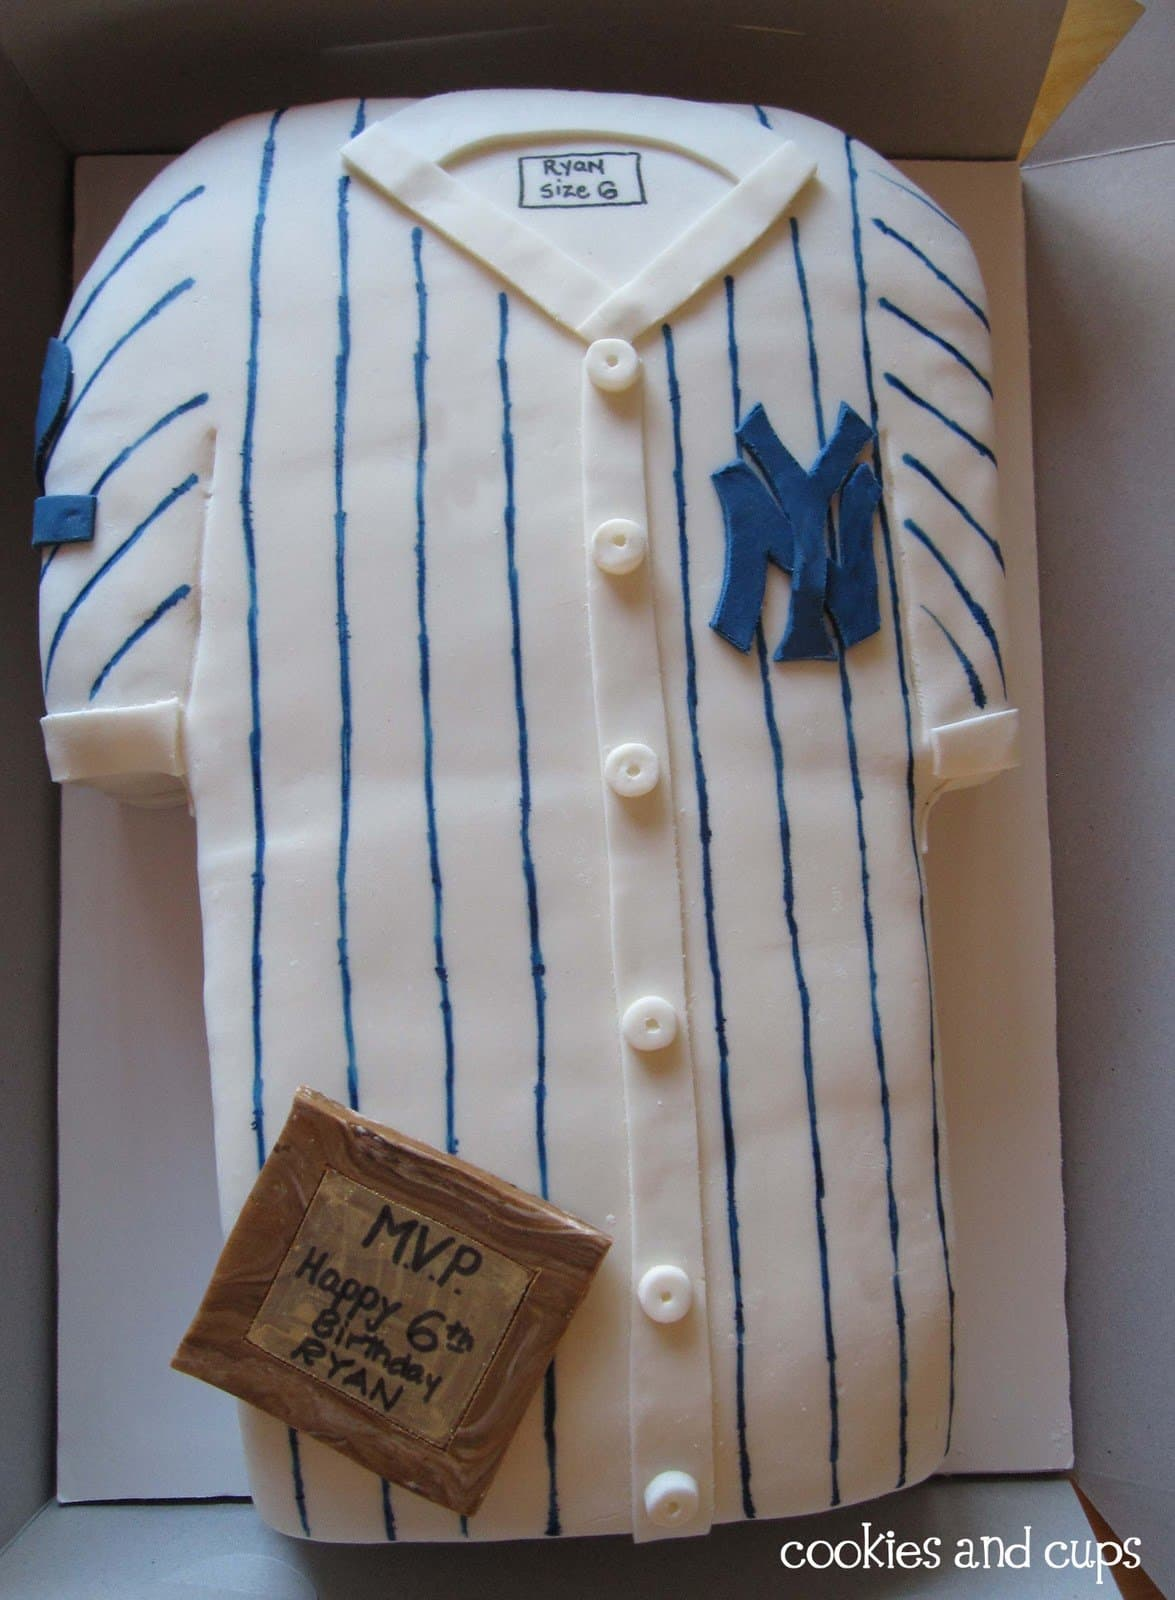 Top view of a cake decorated as a Yankees jersey